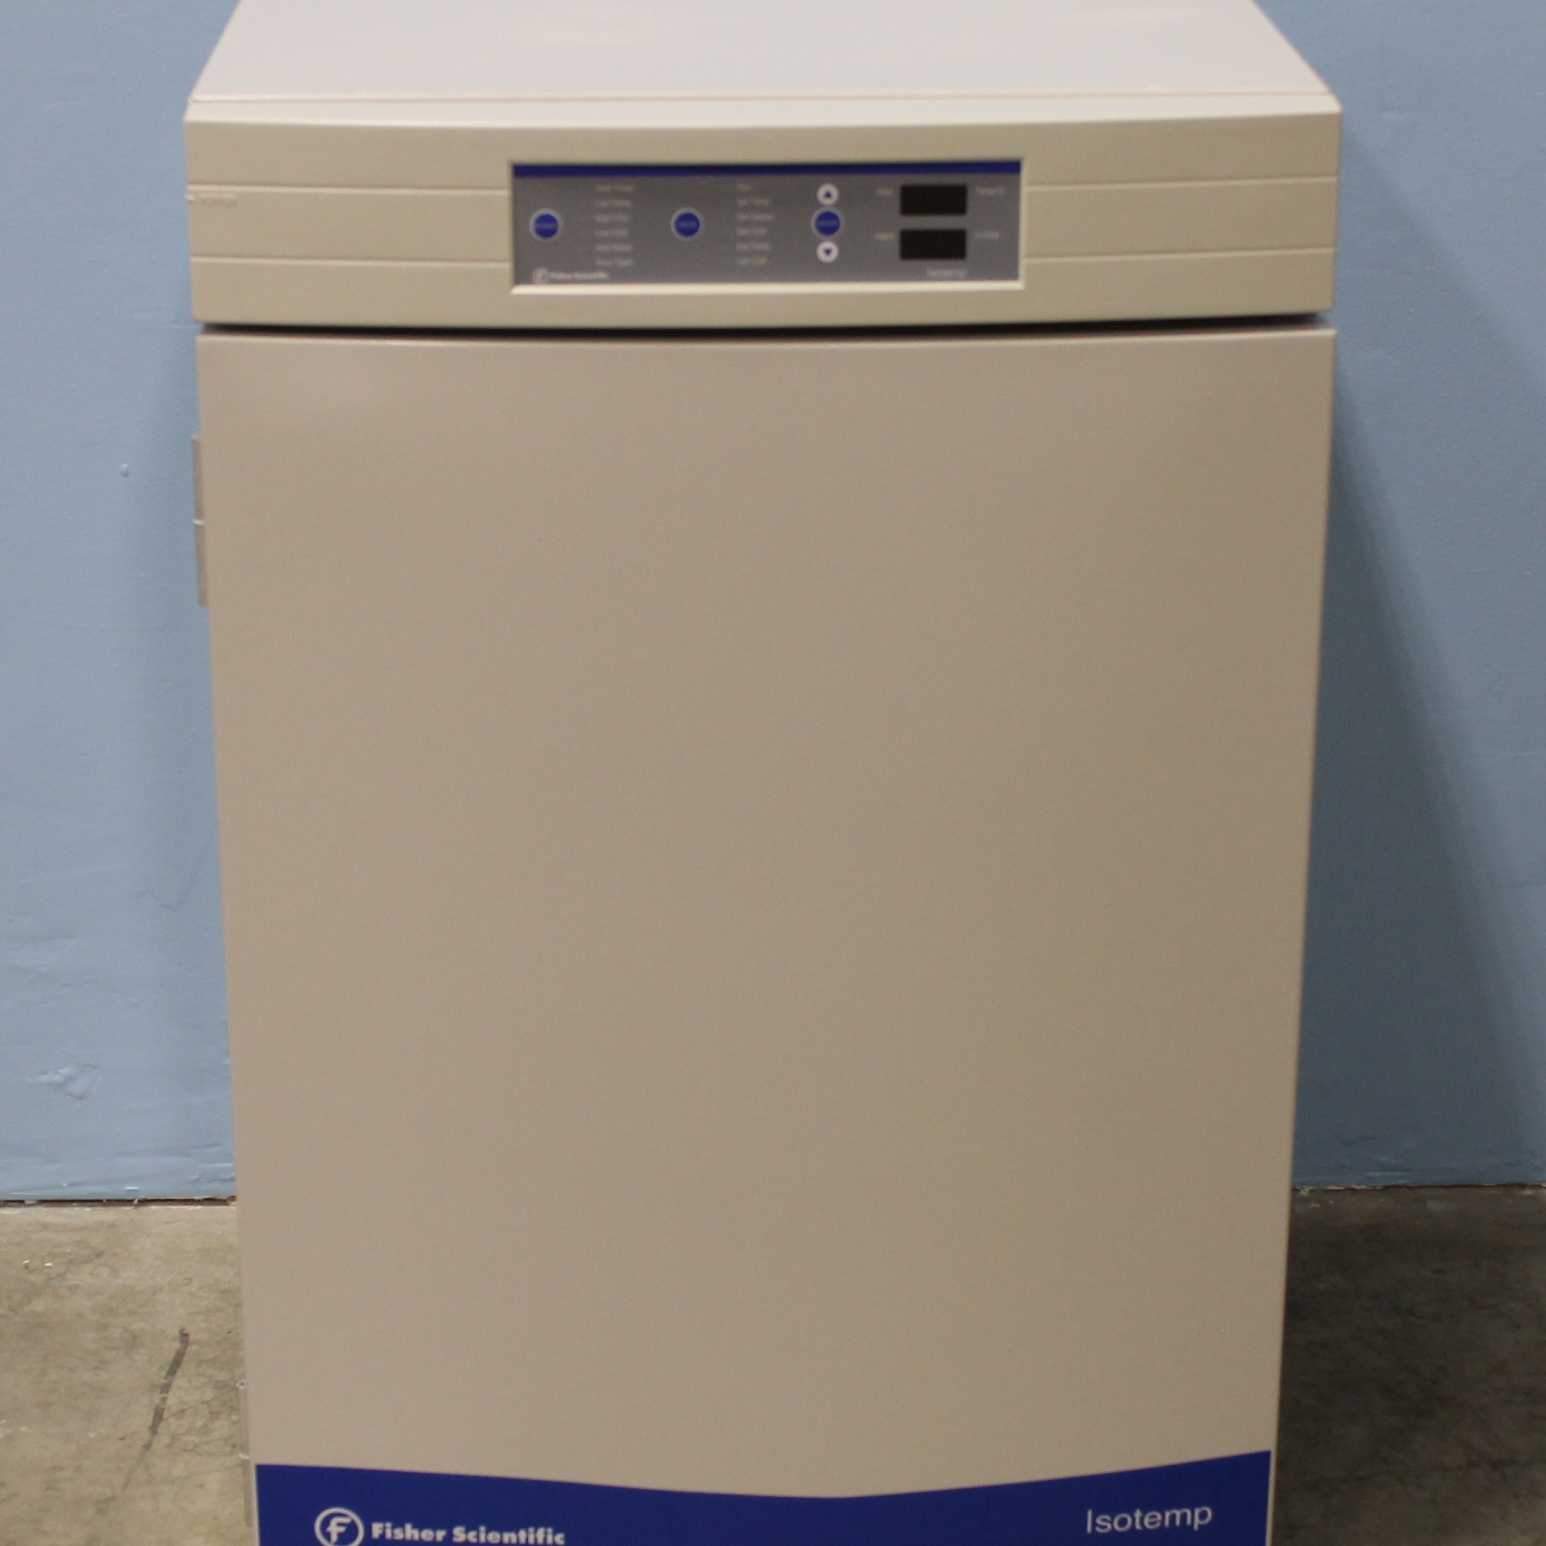 Fisher Scientific Isotemp CO2 Incubator Model 3530 Image